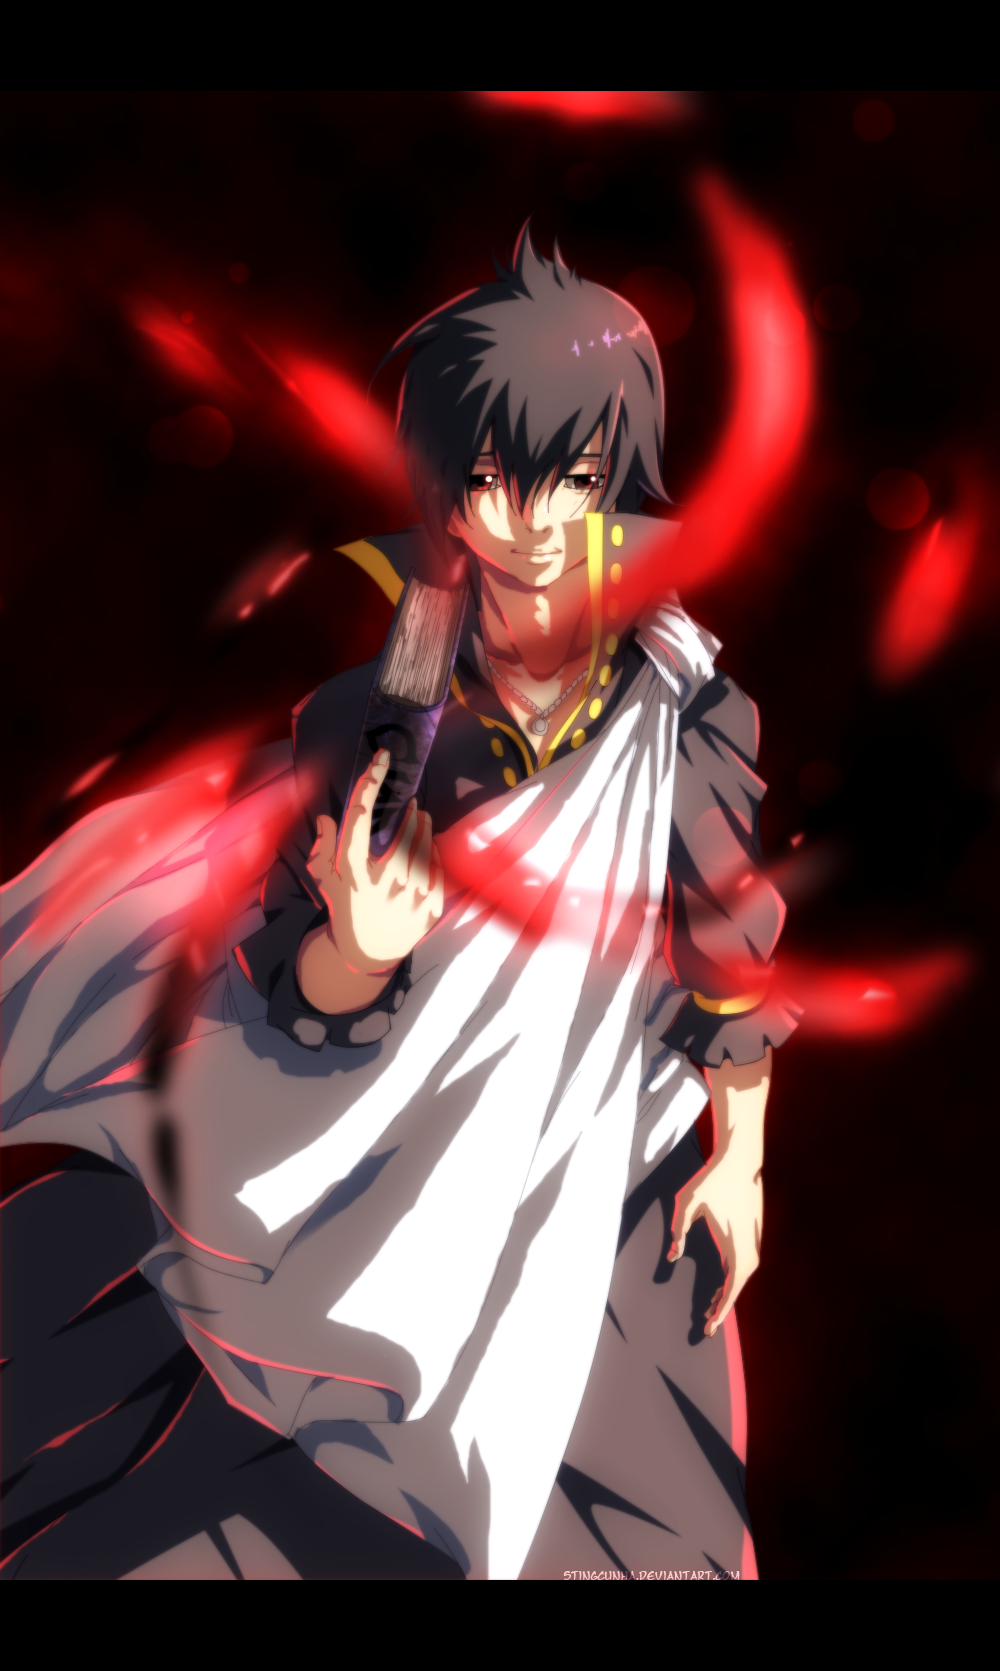 the gallery for gt anime evil mage